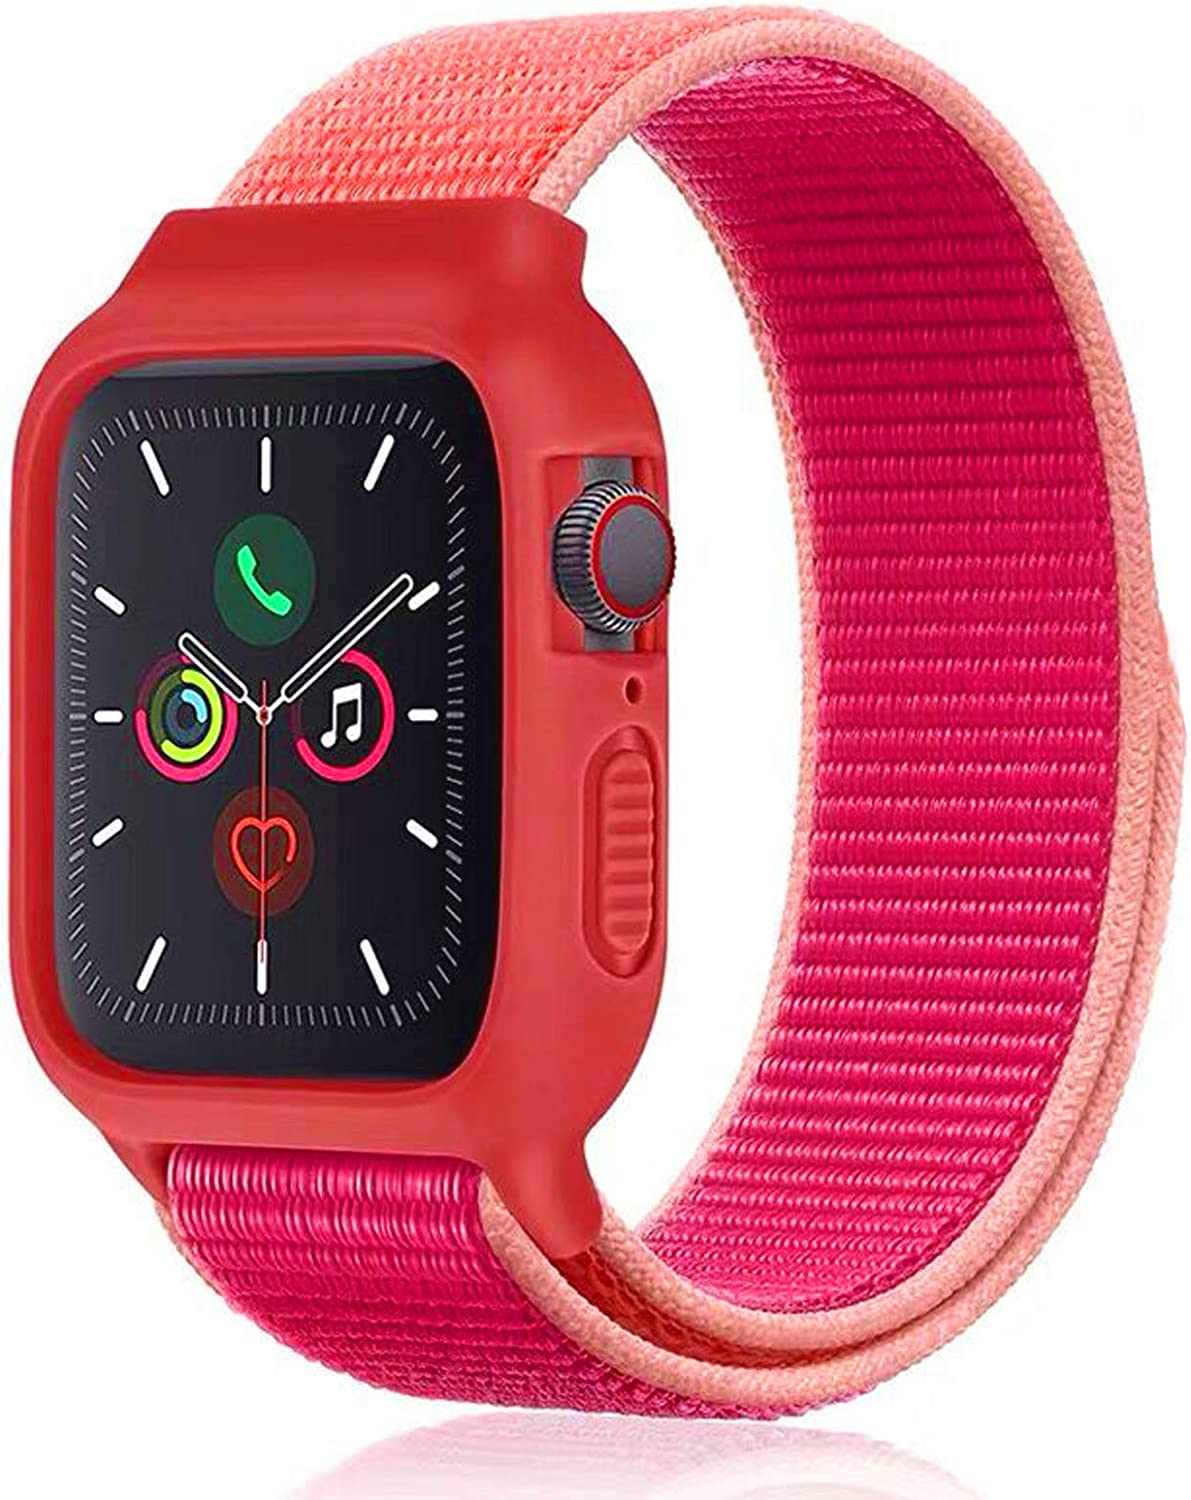 Nylon Sport Band with Case Compatible with Apple Watch Band 44mm 42mm 40mm 38mm, Protective Silicone Bumper Case with Nylon Sport Loop Strap for Series 6/5/4/3/SE for Kids Women Men, Pomegranate Red